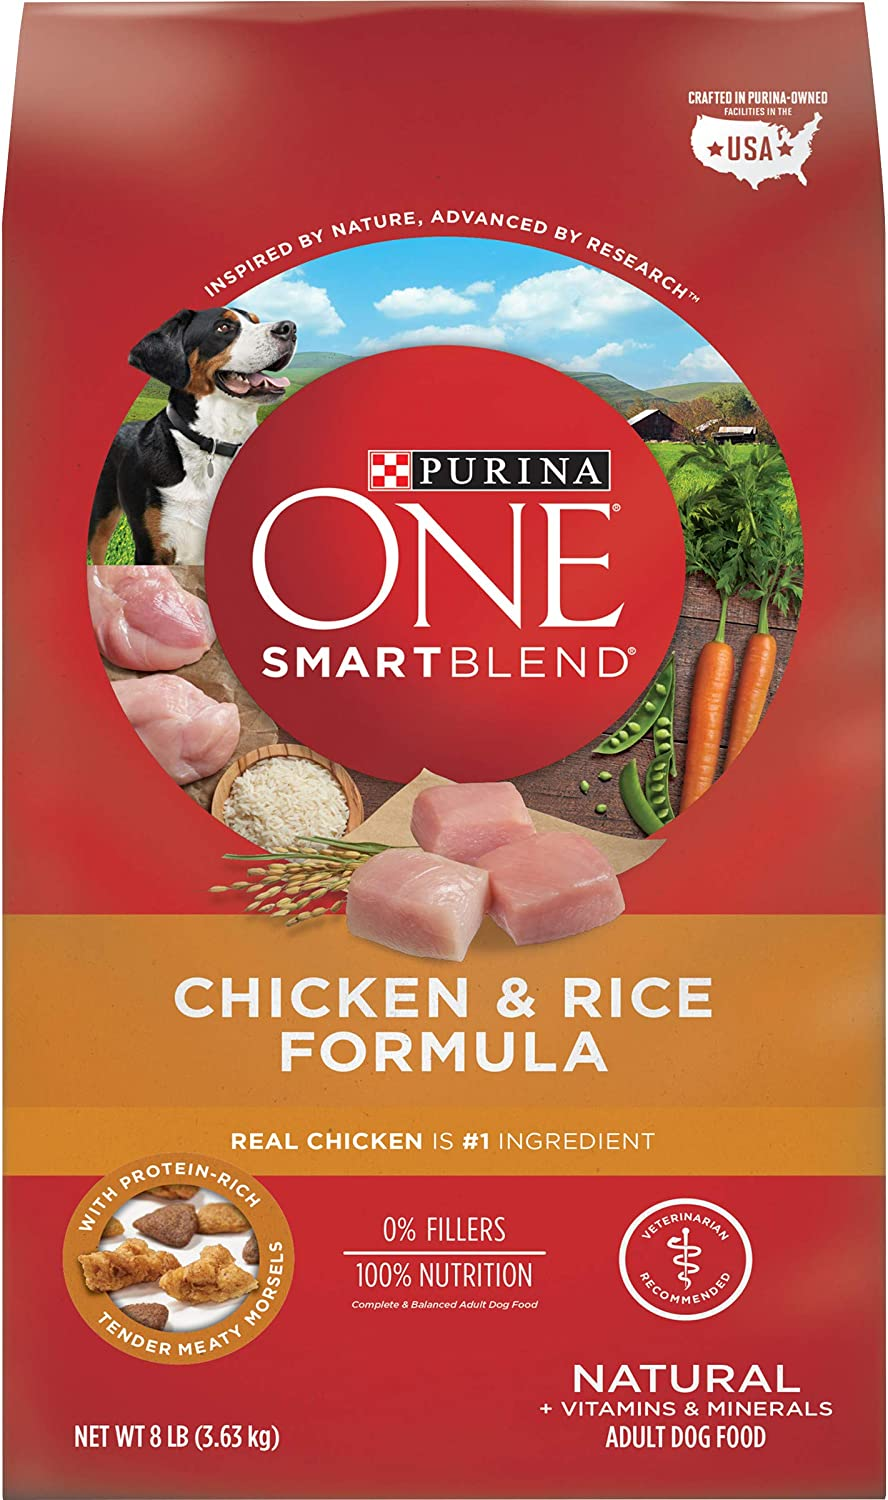 3. Purina ONE SmartBlend Chicken & Rice Adult Formula Dry Dog Food